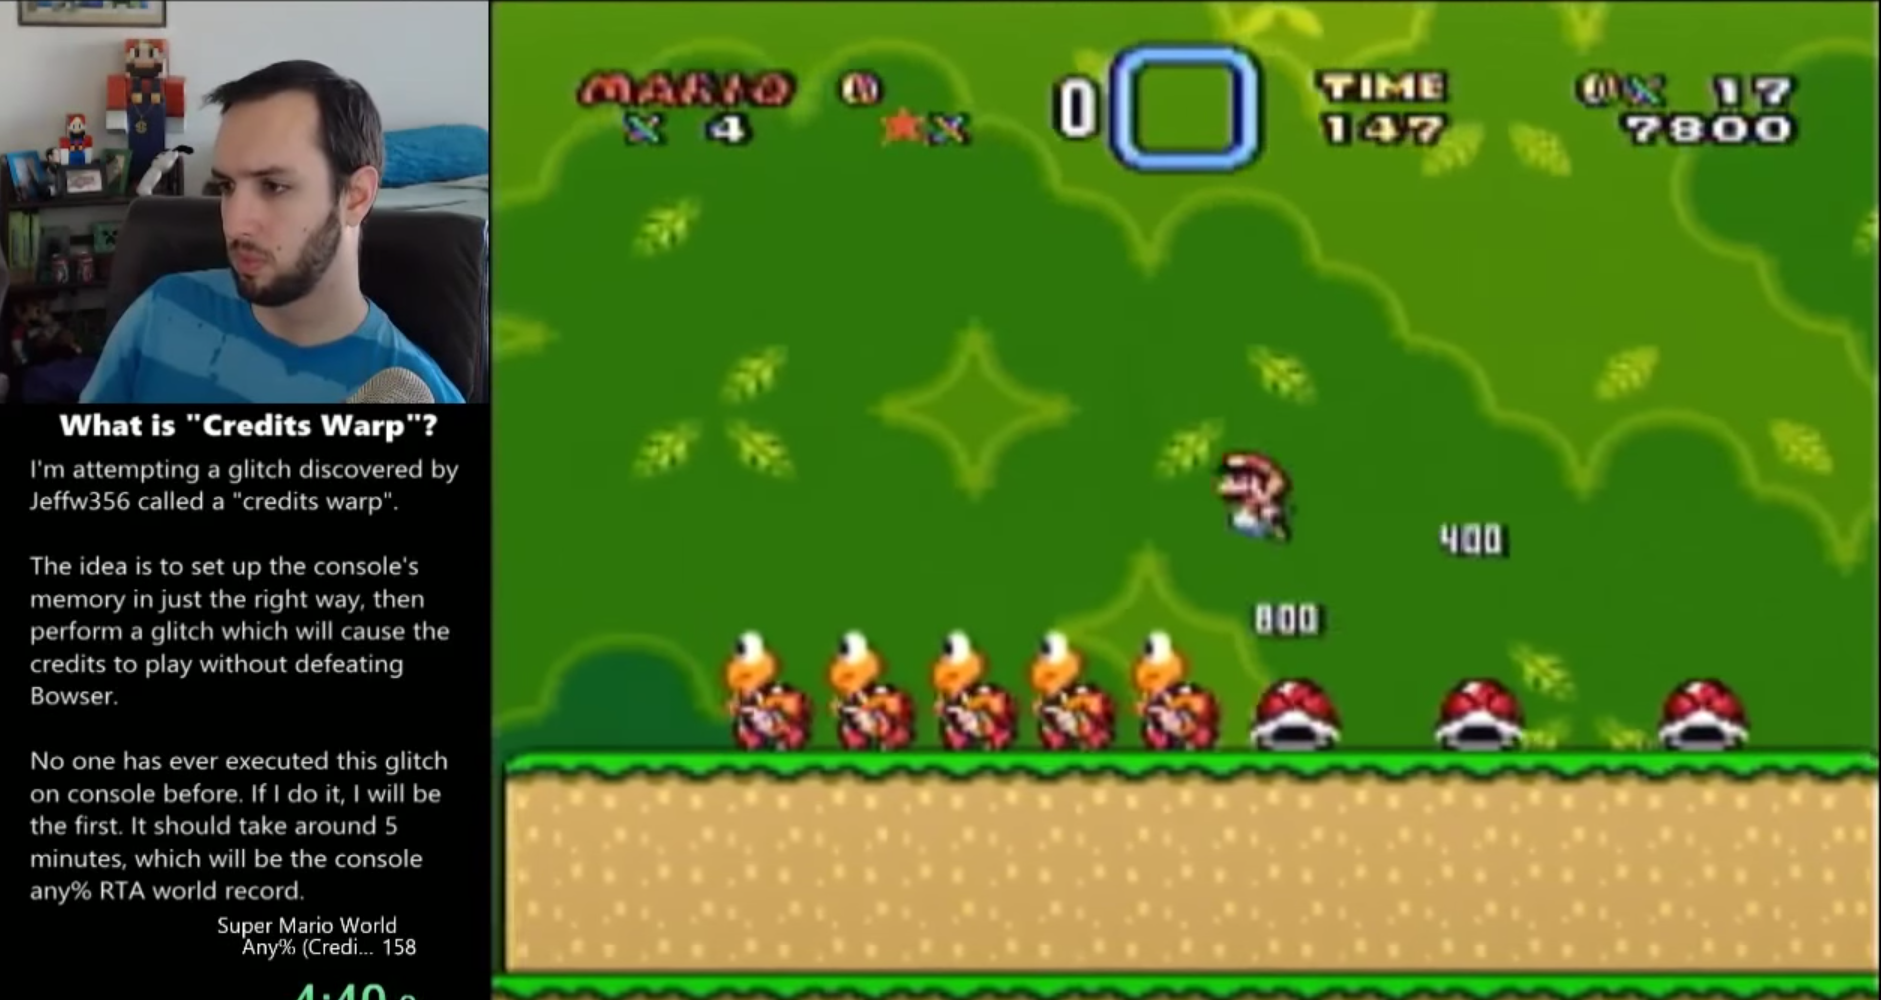 Near-Impossible Super Mario World Glitch Done For First Time on SNES